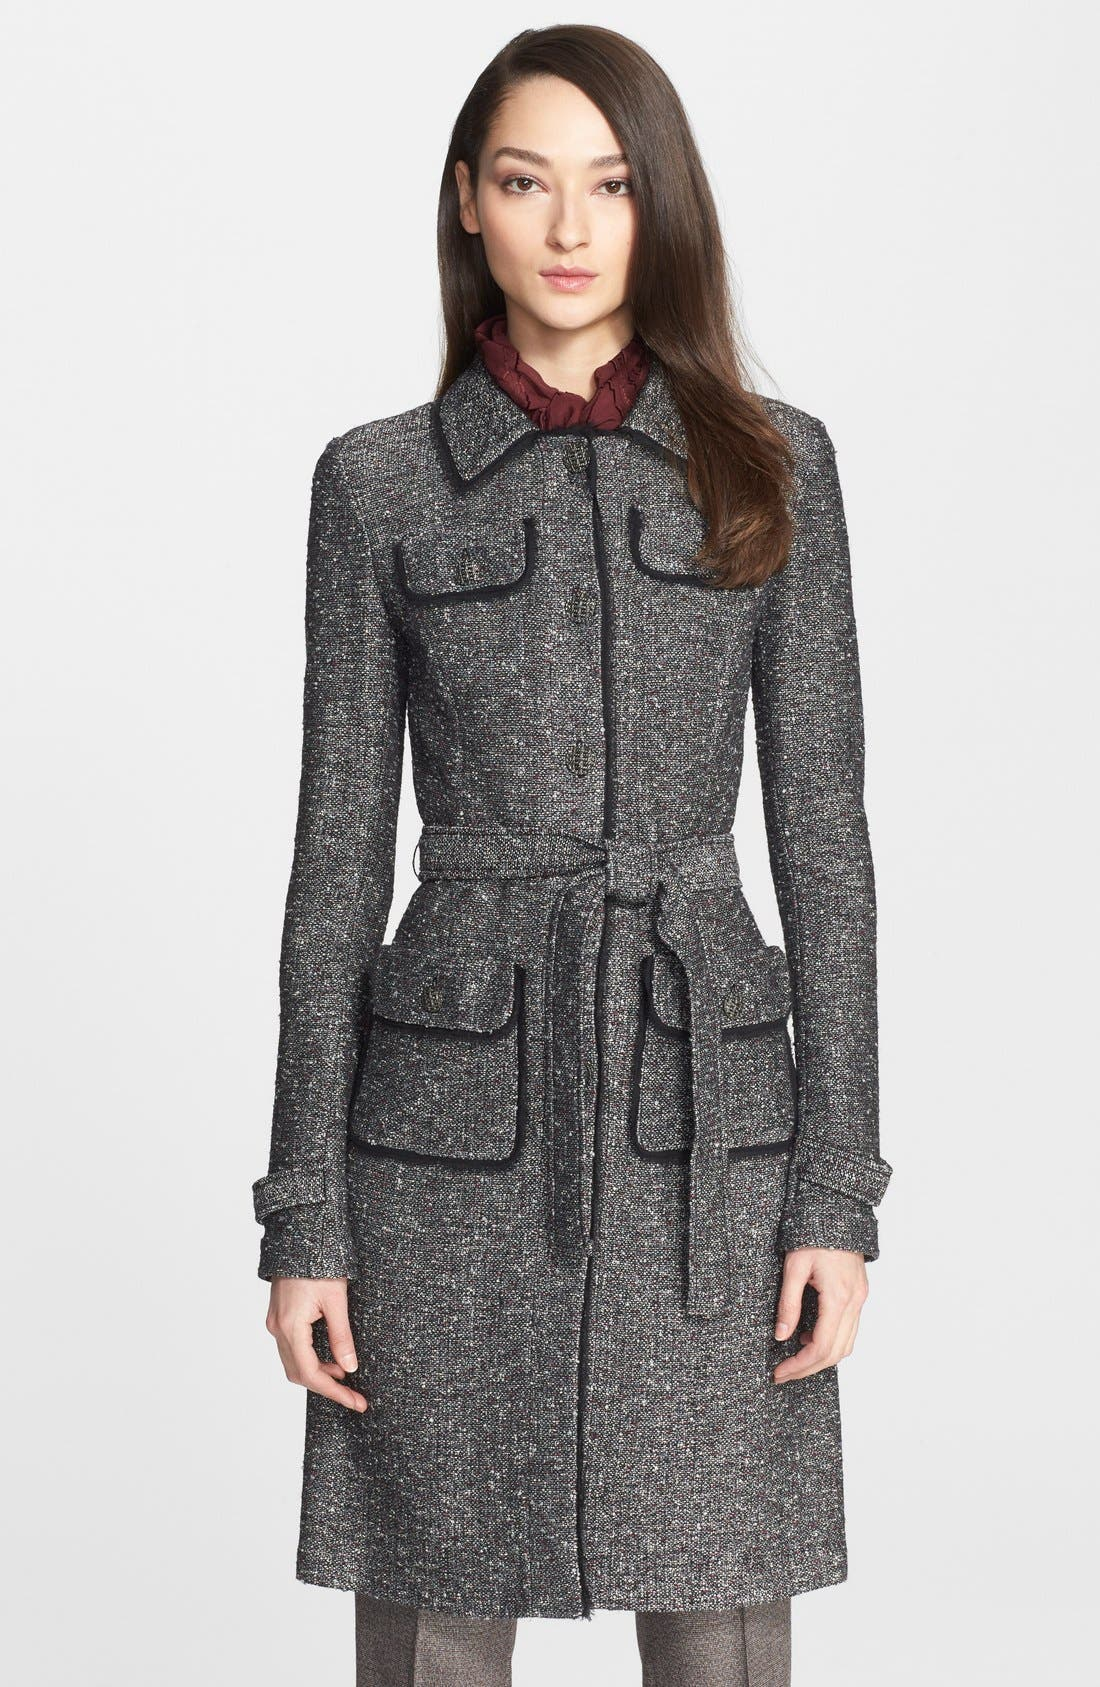 Main Image - St. John Collection Flecked Tweed Knit Topper